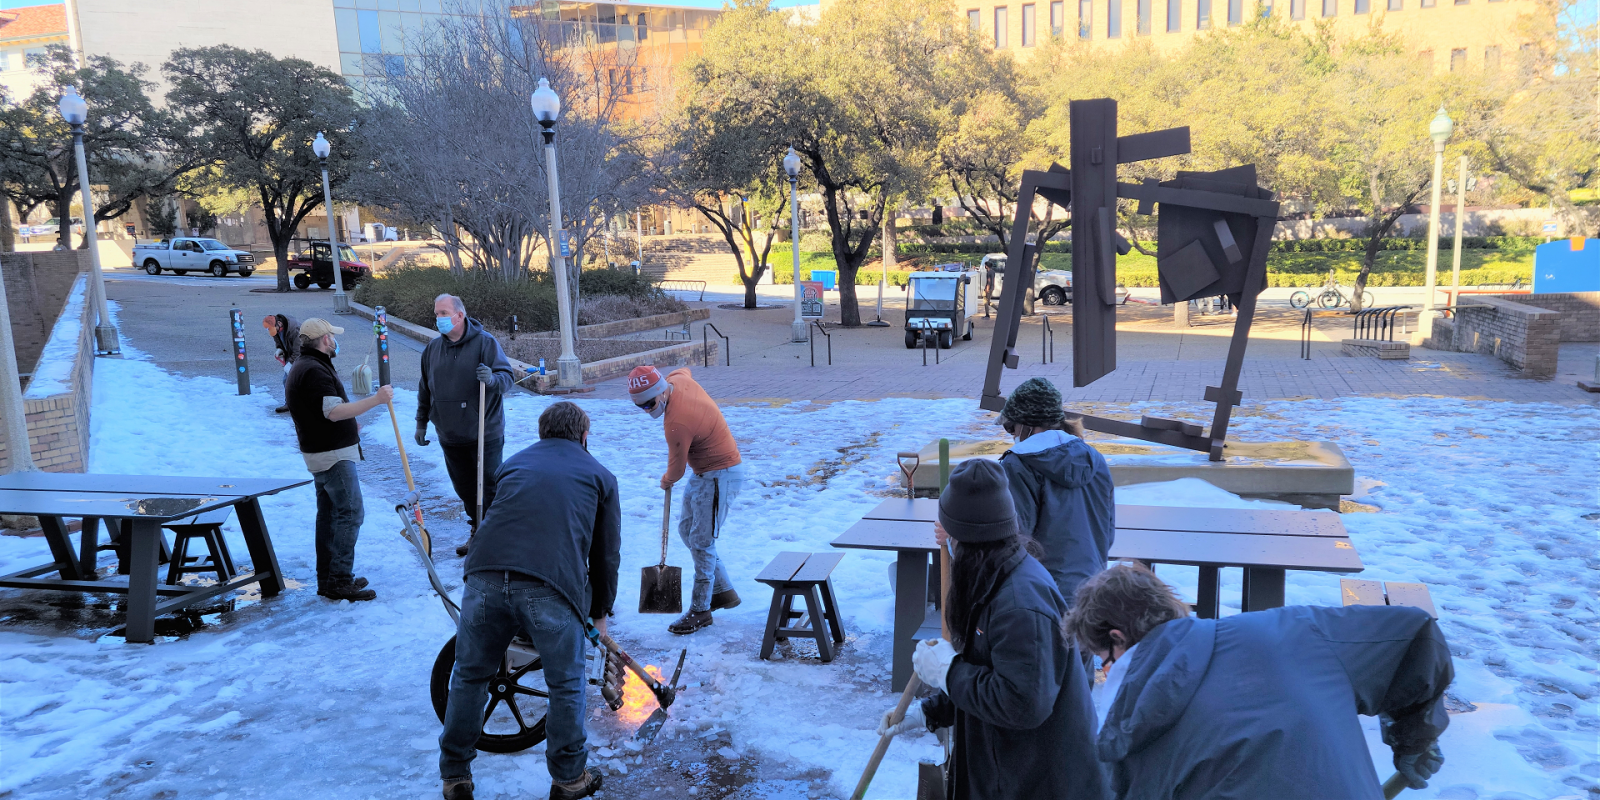 Image of Landscape Services staff using shovels and a propane torch to remove ice at PCL